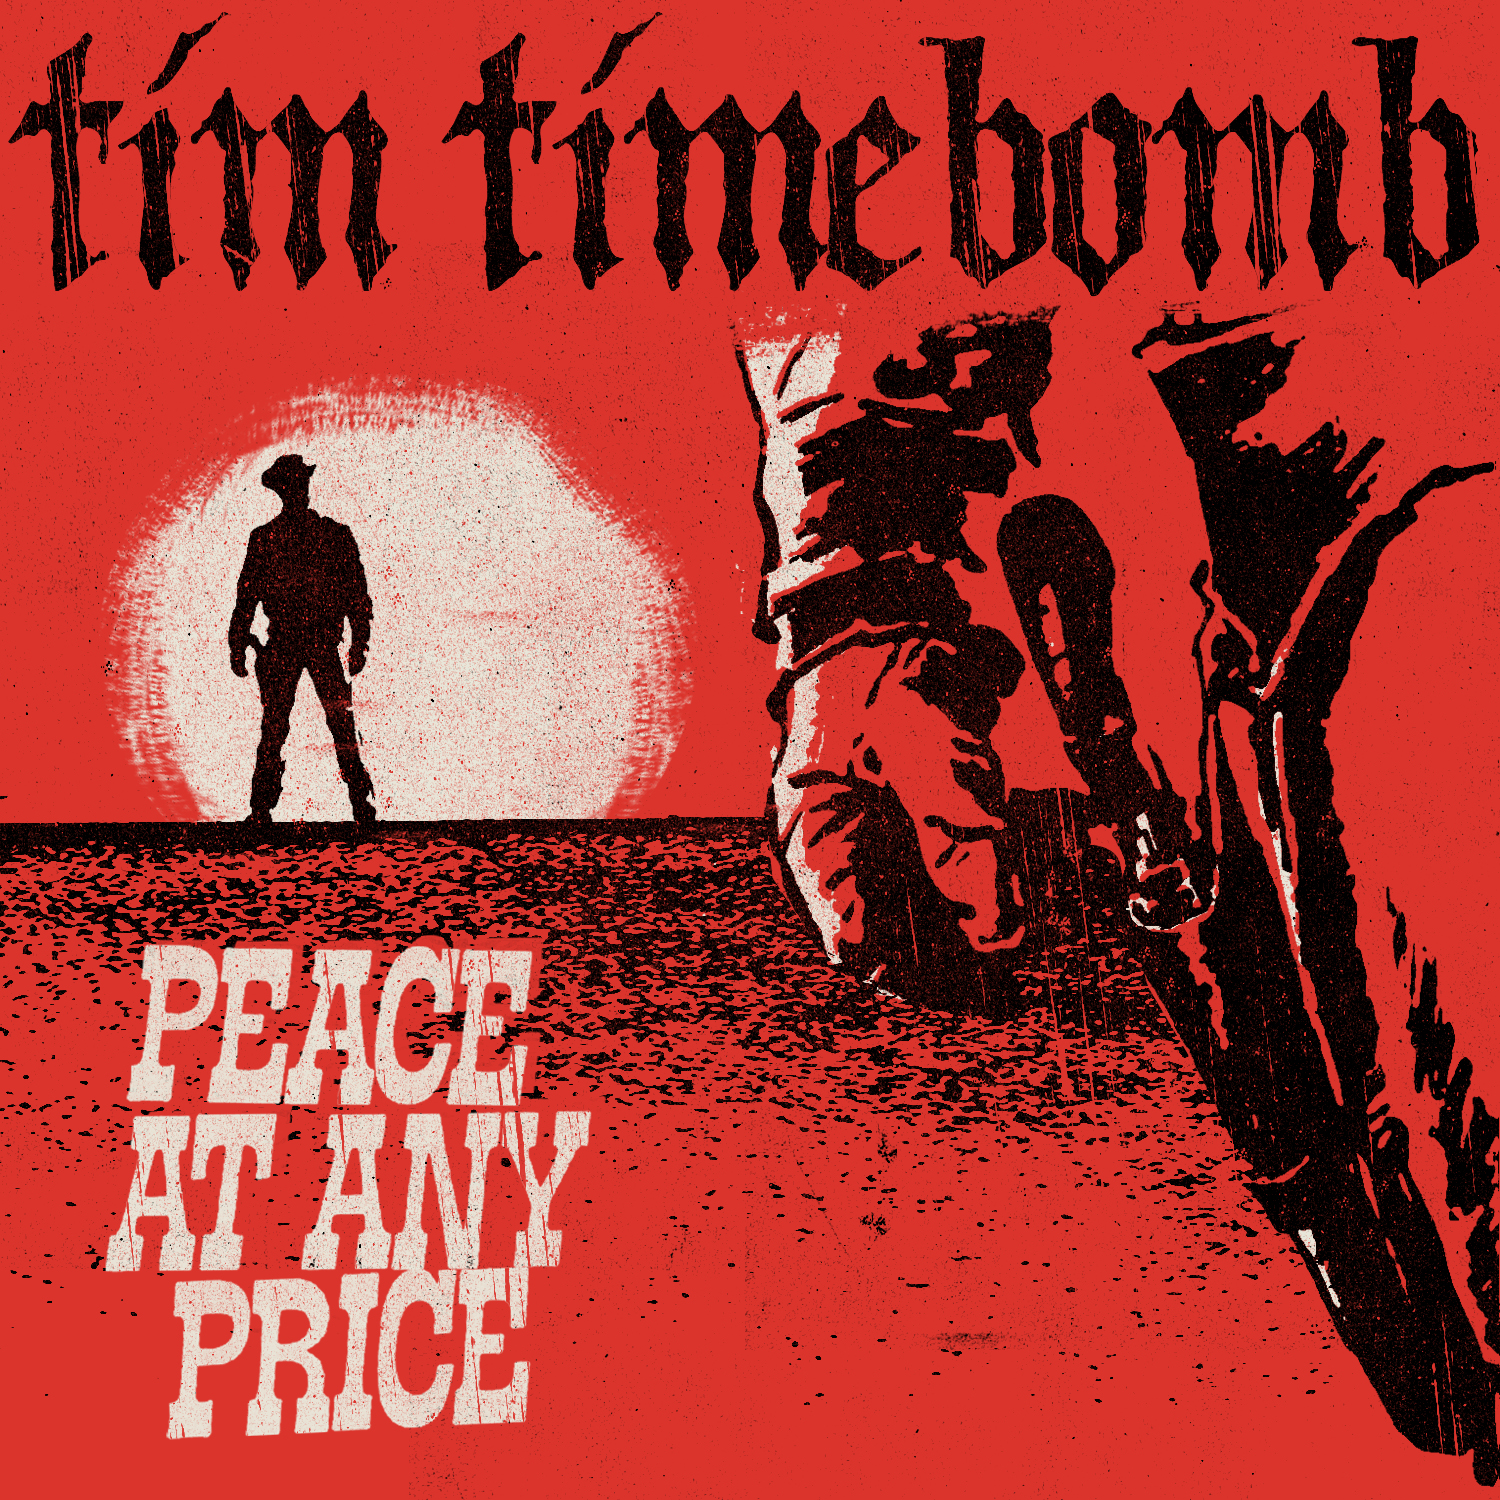 ***PEACE AT ANY PRICE